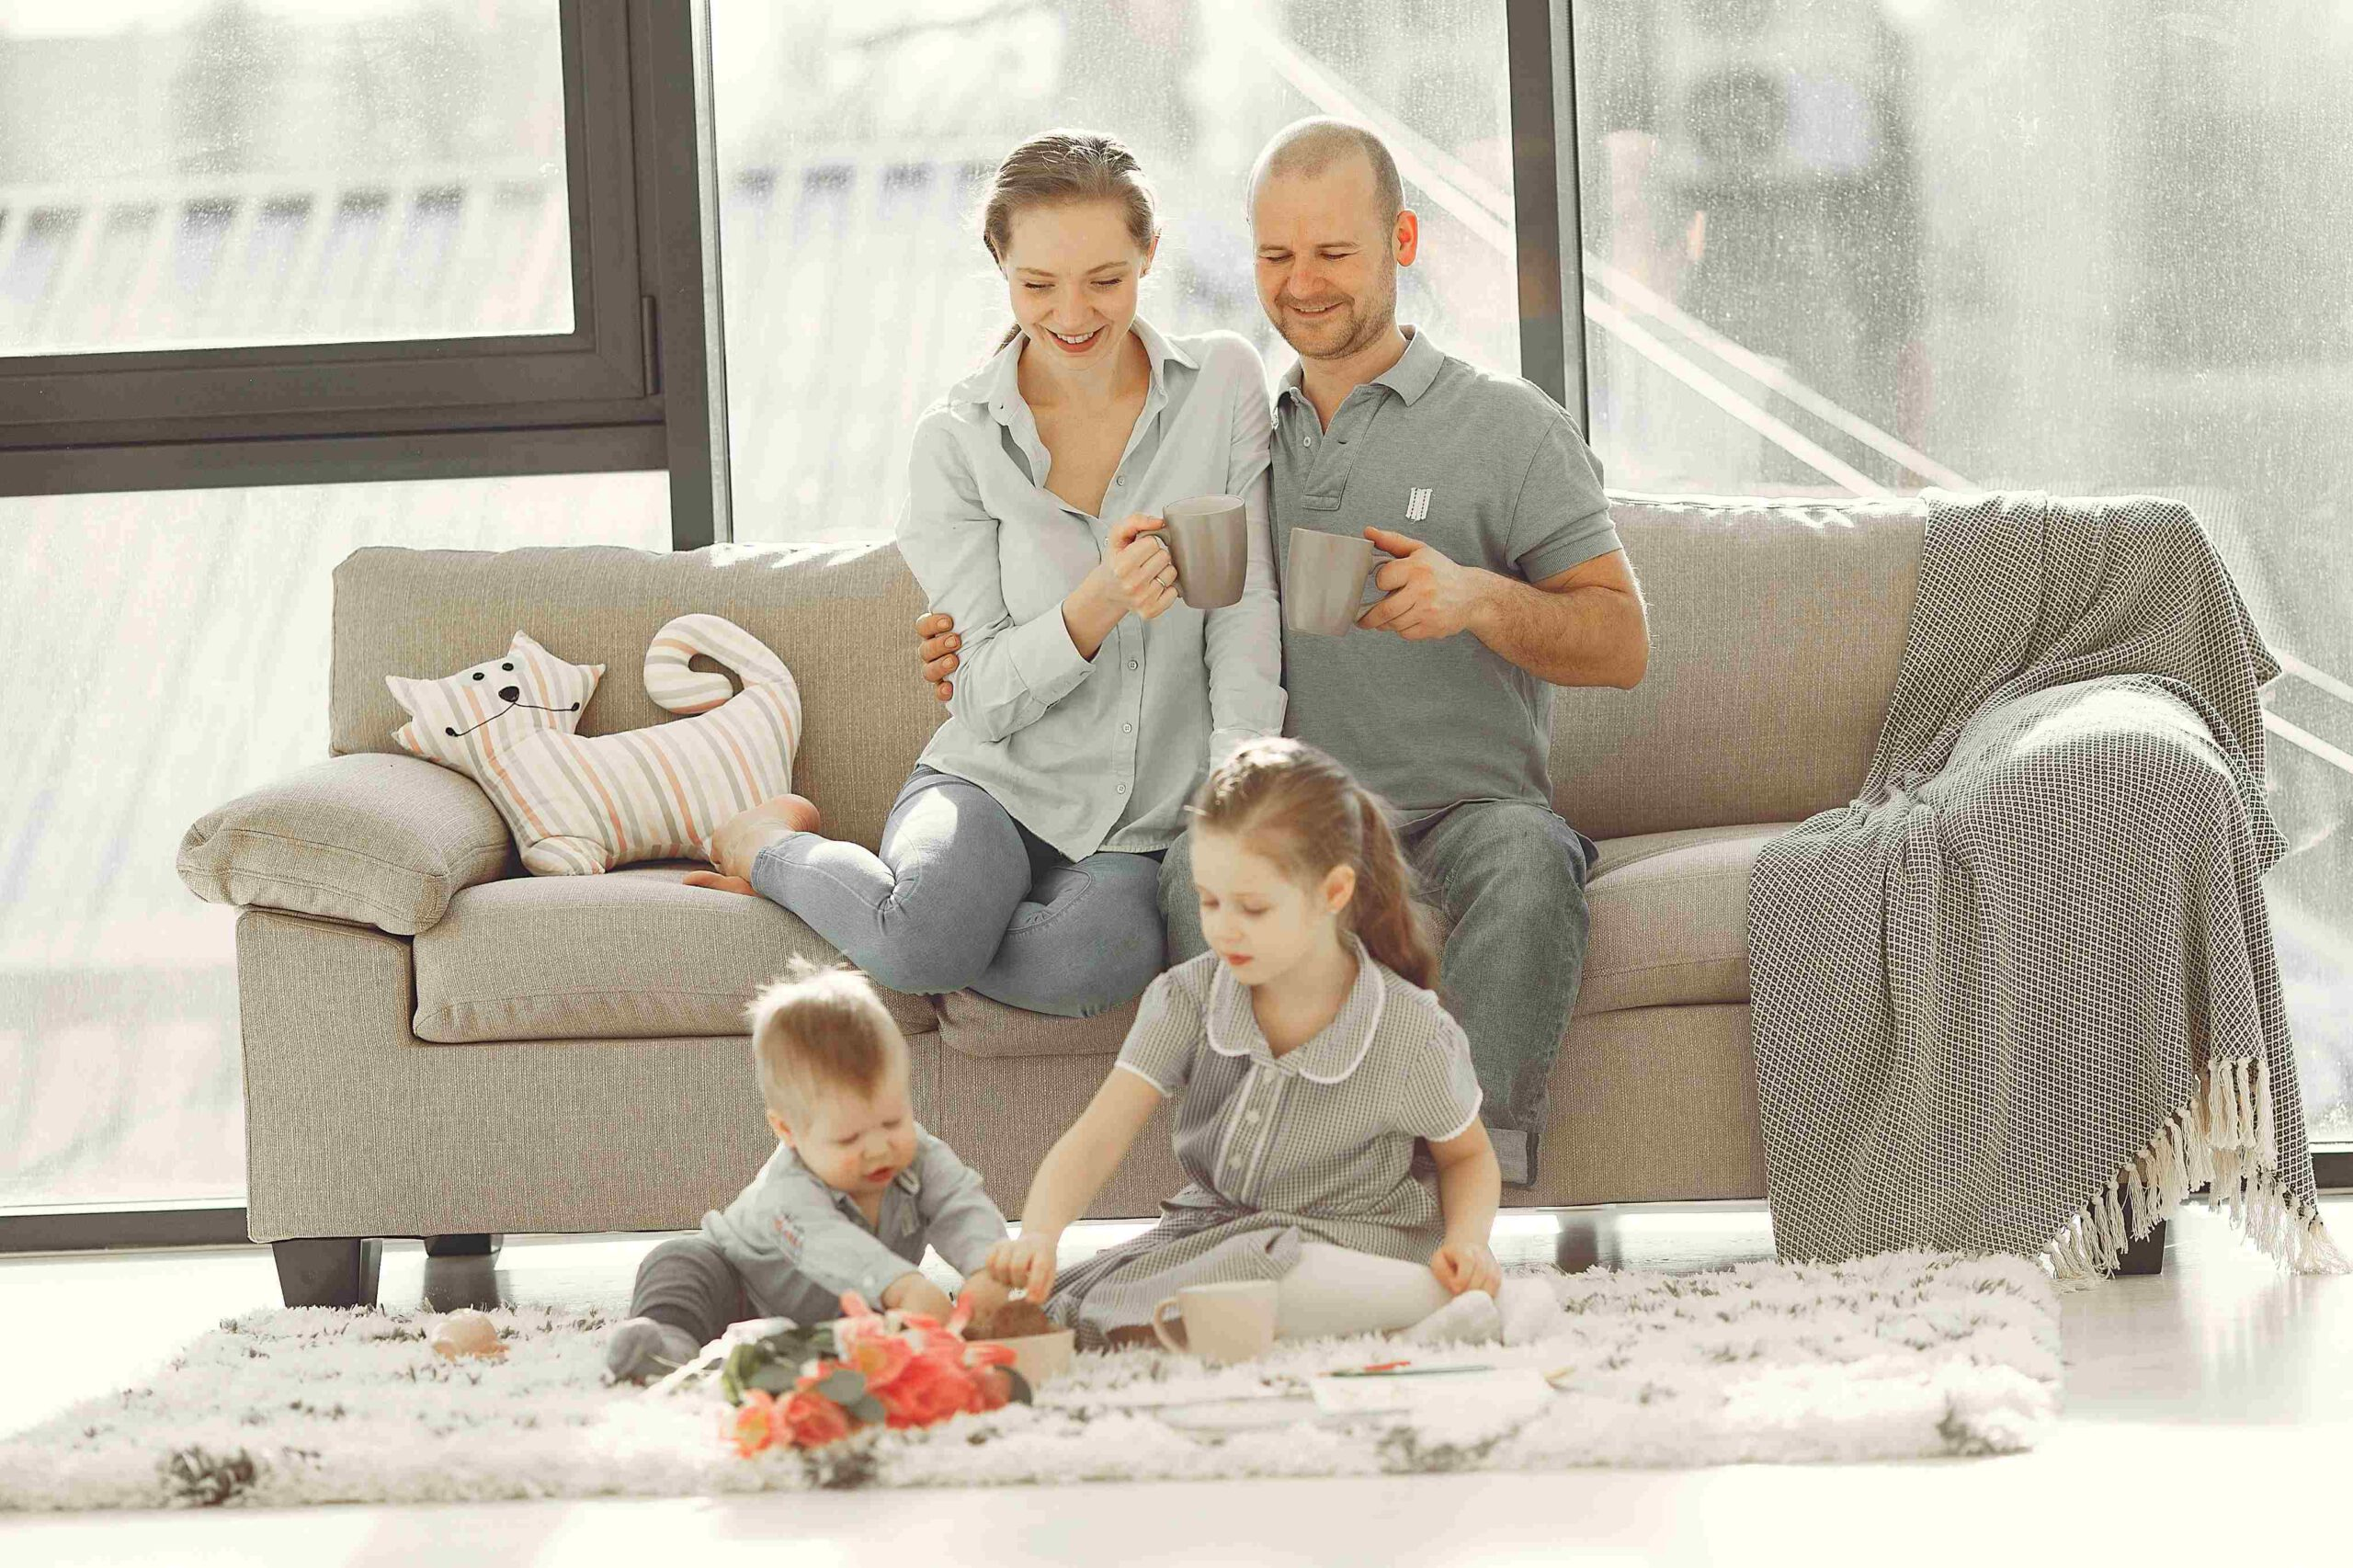 happy-family-having-fun-at-home-3875142 (1)